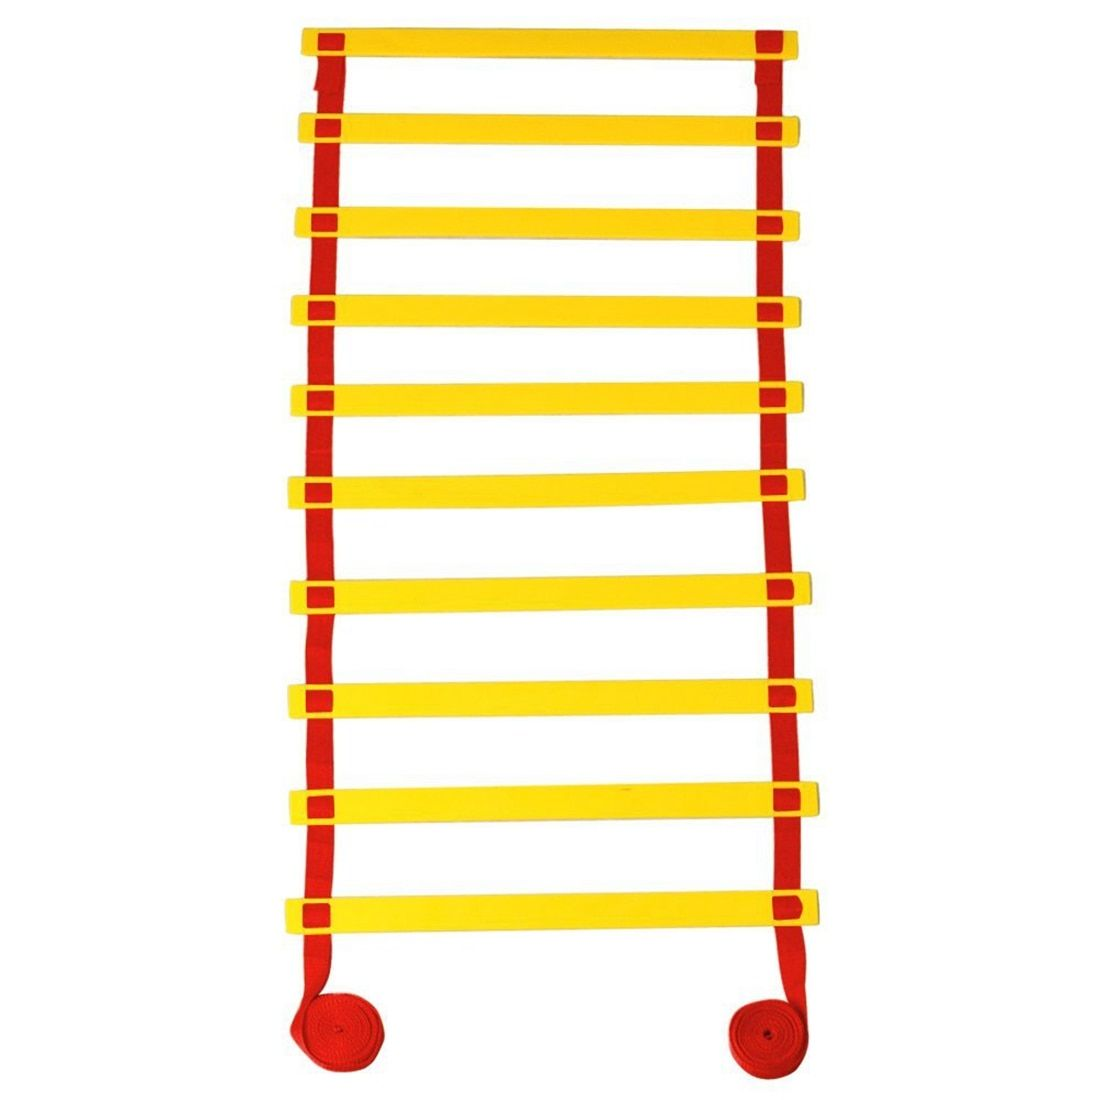 10-rung Sports Agility Ladder For Speed Football Fitness Feet Training Training Ladder Fast Footwork Agility Drills Aid (5M red)